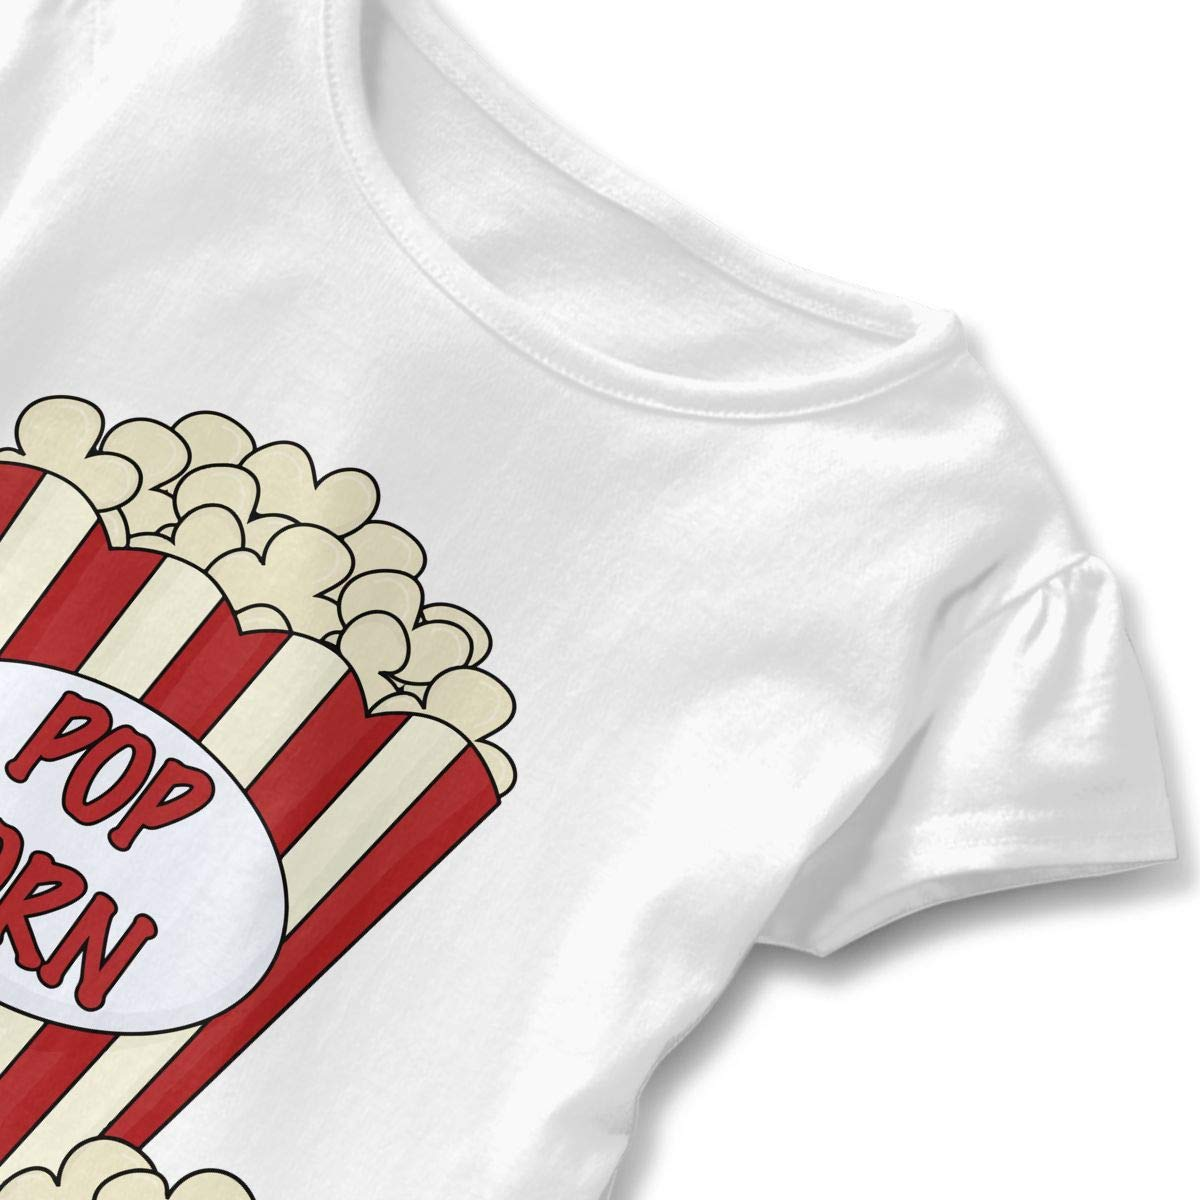 HYBDX9T Little Girls Popcorn Clipart Funny Short Sleeve Cotton T Shirts Basic Tops Tee Clothes